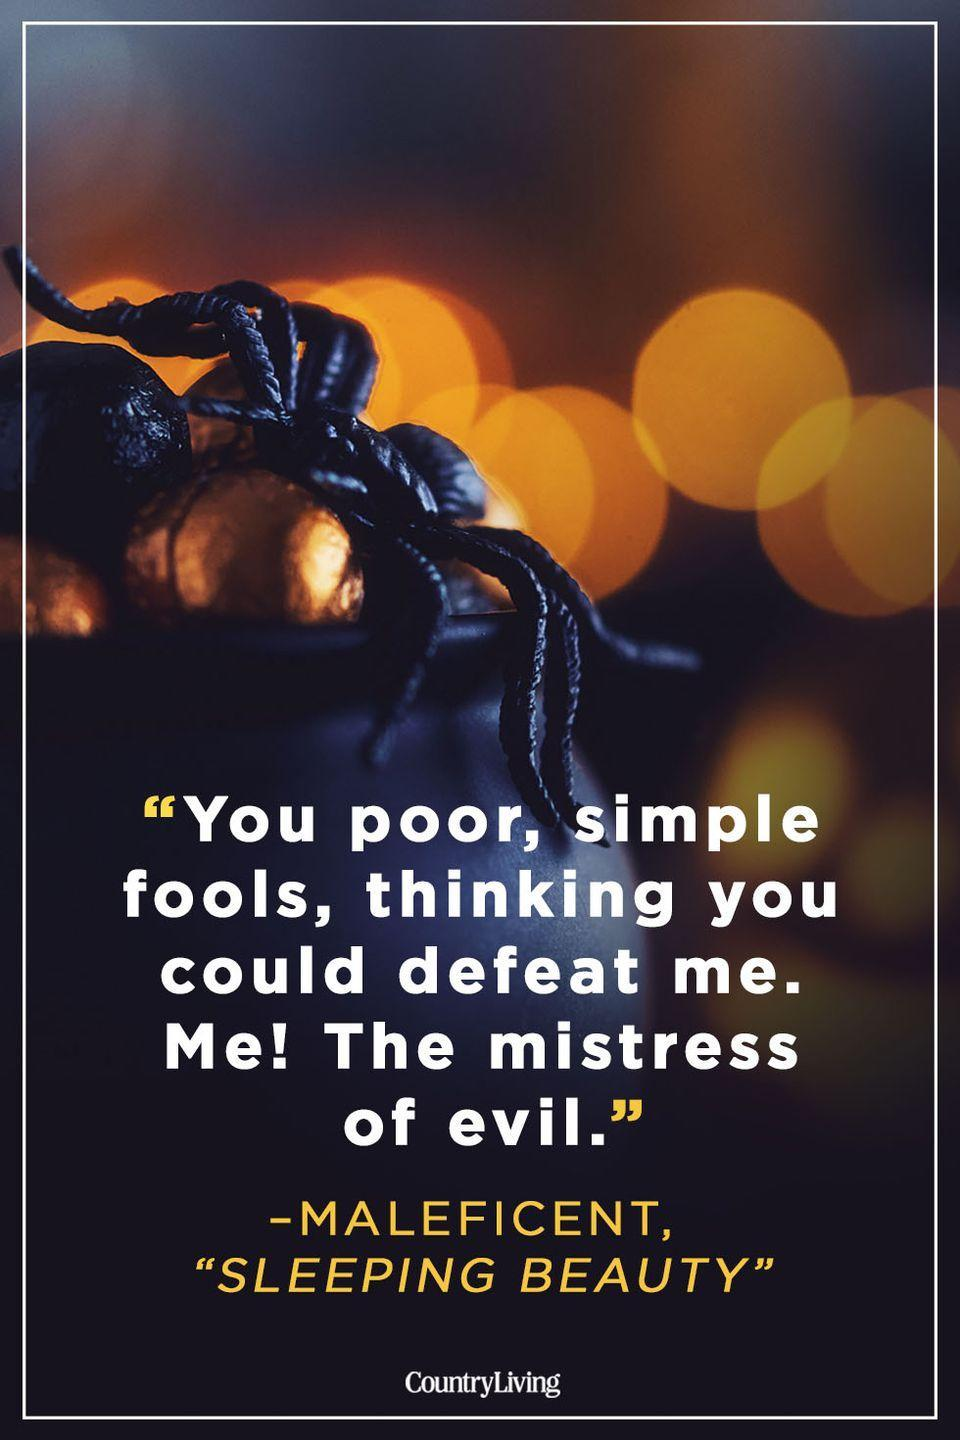 """<p>""""You poor, simple fools, thinking you could defeat me. Me! The mistress of evil.""""</p>"""